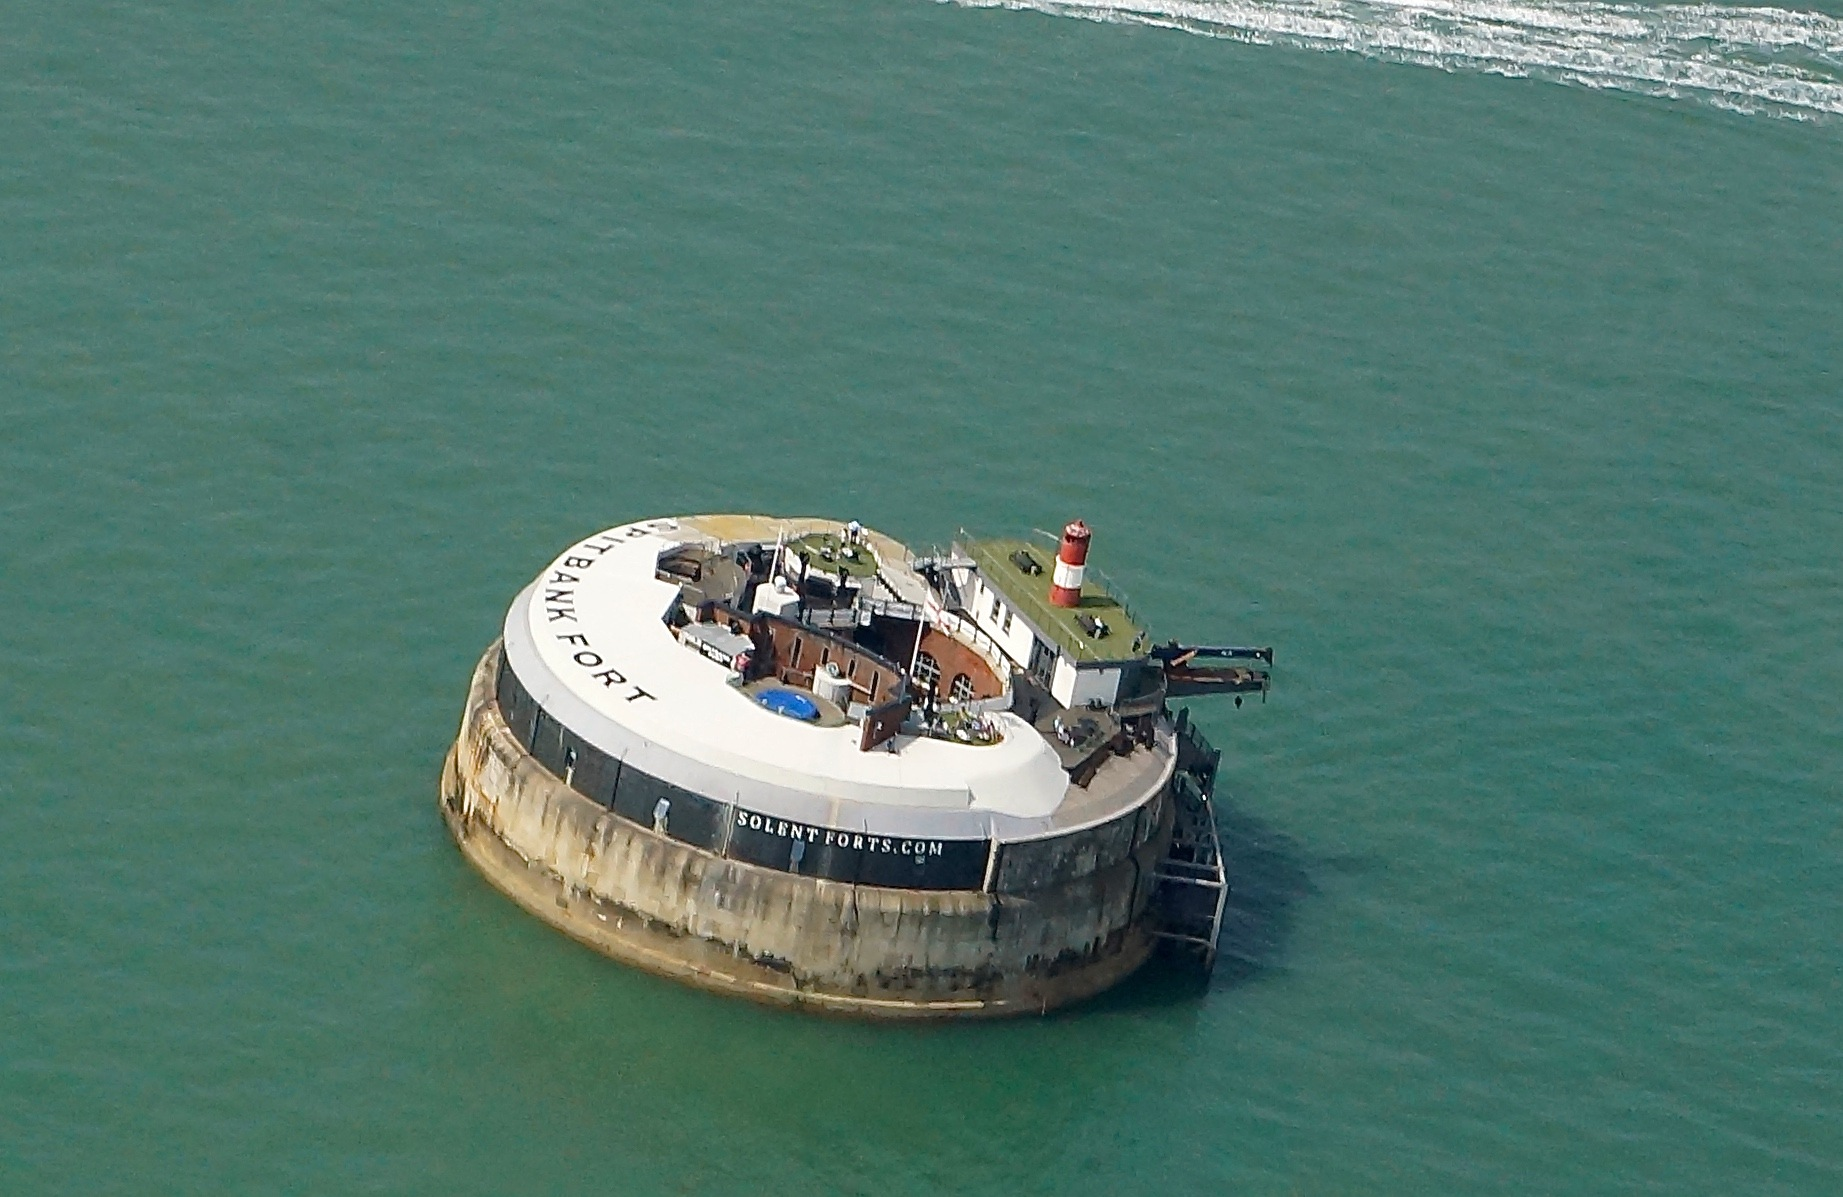 spitbank fort by JohnBulpin